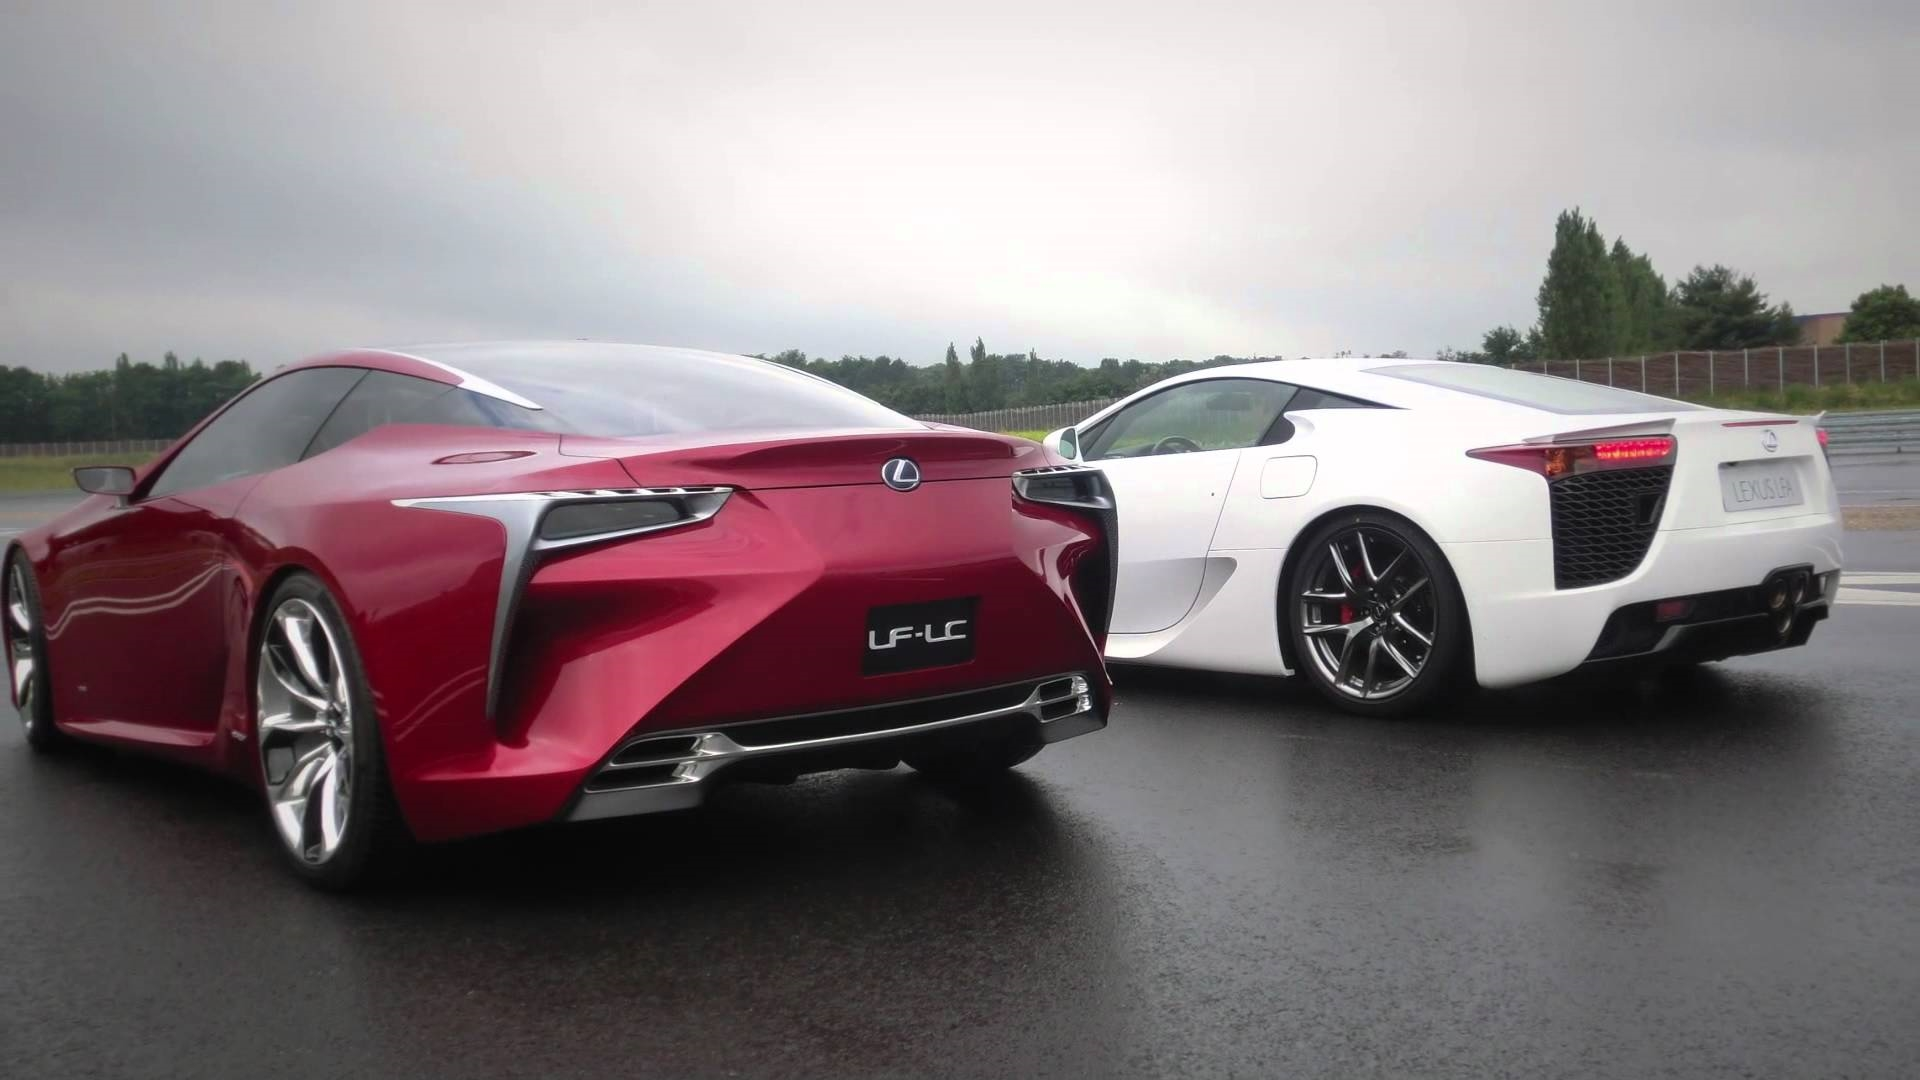 Lexus LFA and LF LC Concept Meet on the Track CarBuzz